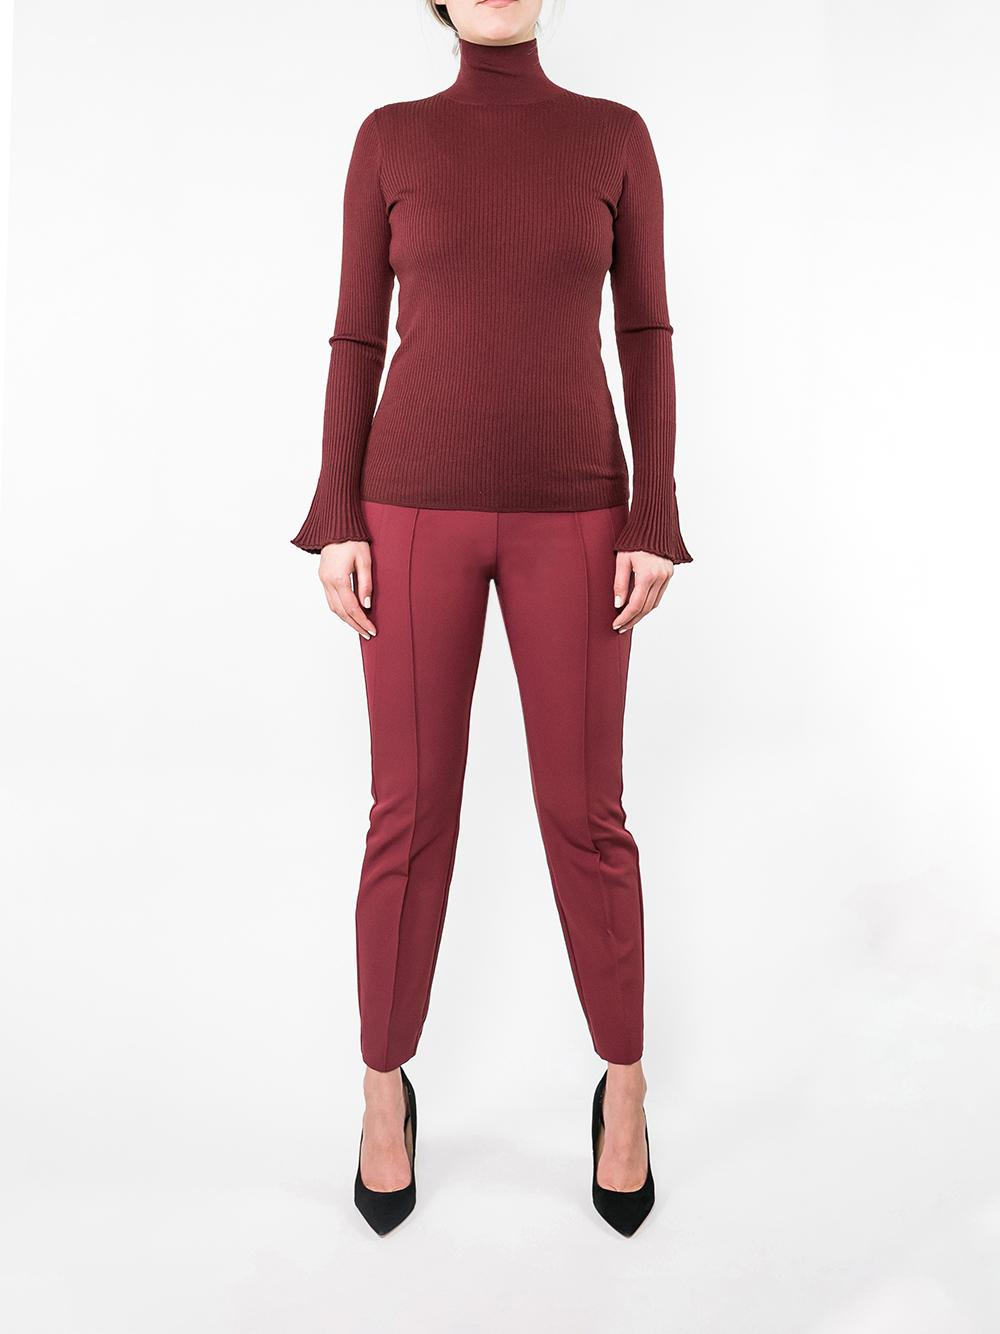 Gramercy Acclaimed Stretch Pant